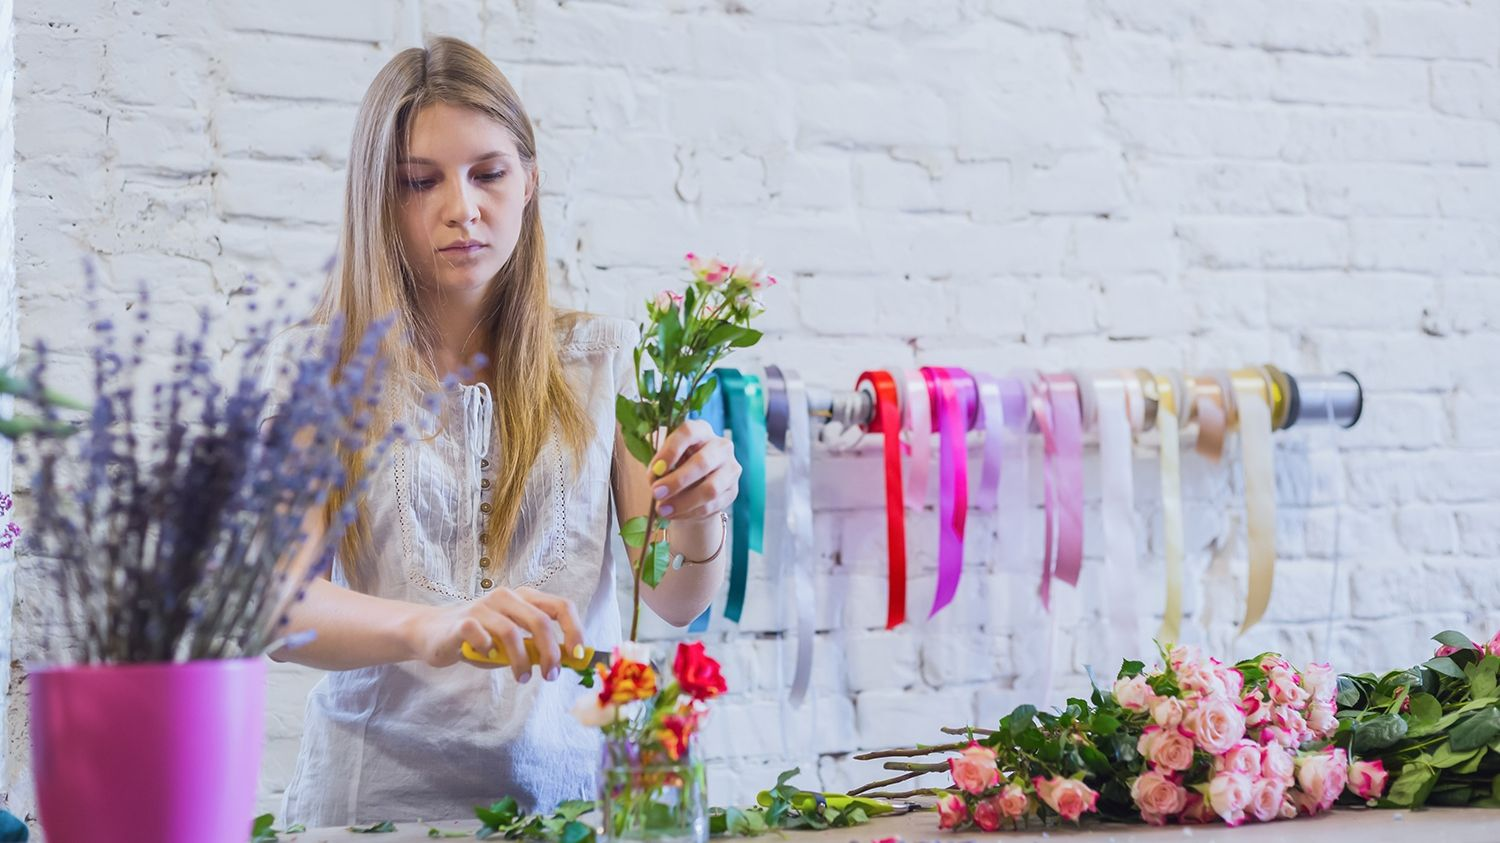 SGS Economics and Planning pop up retail florist